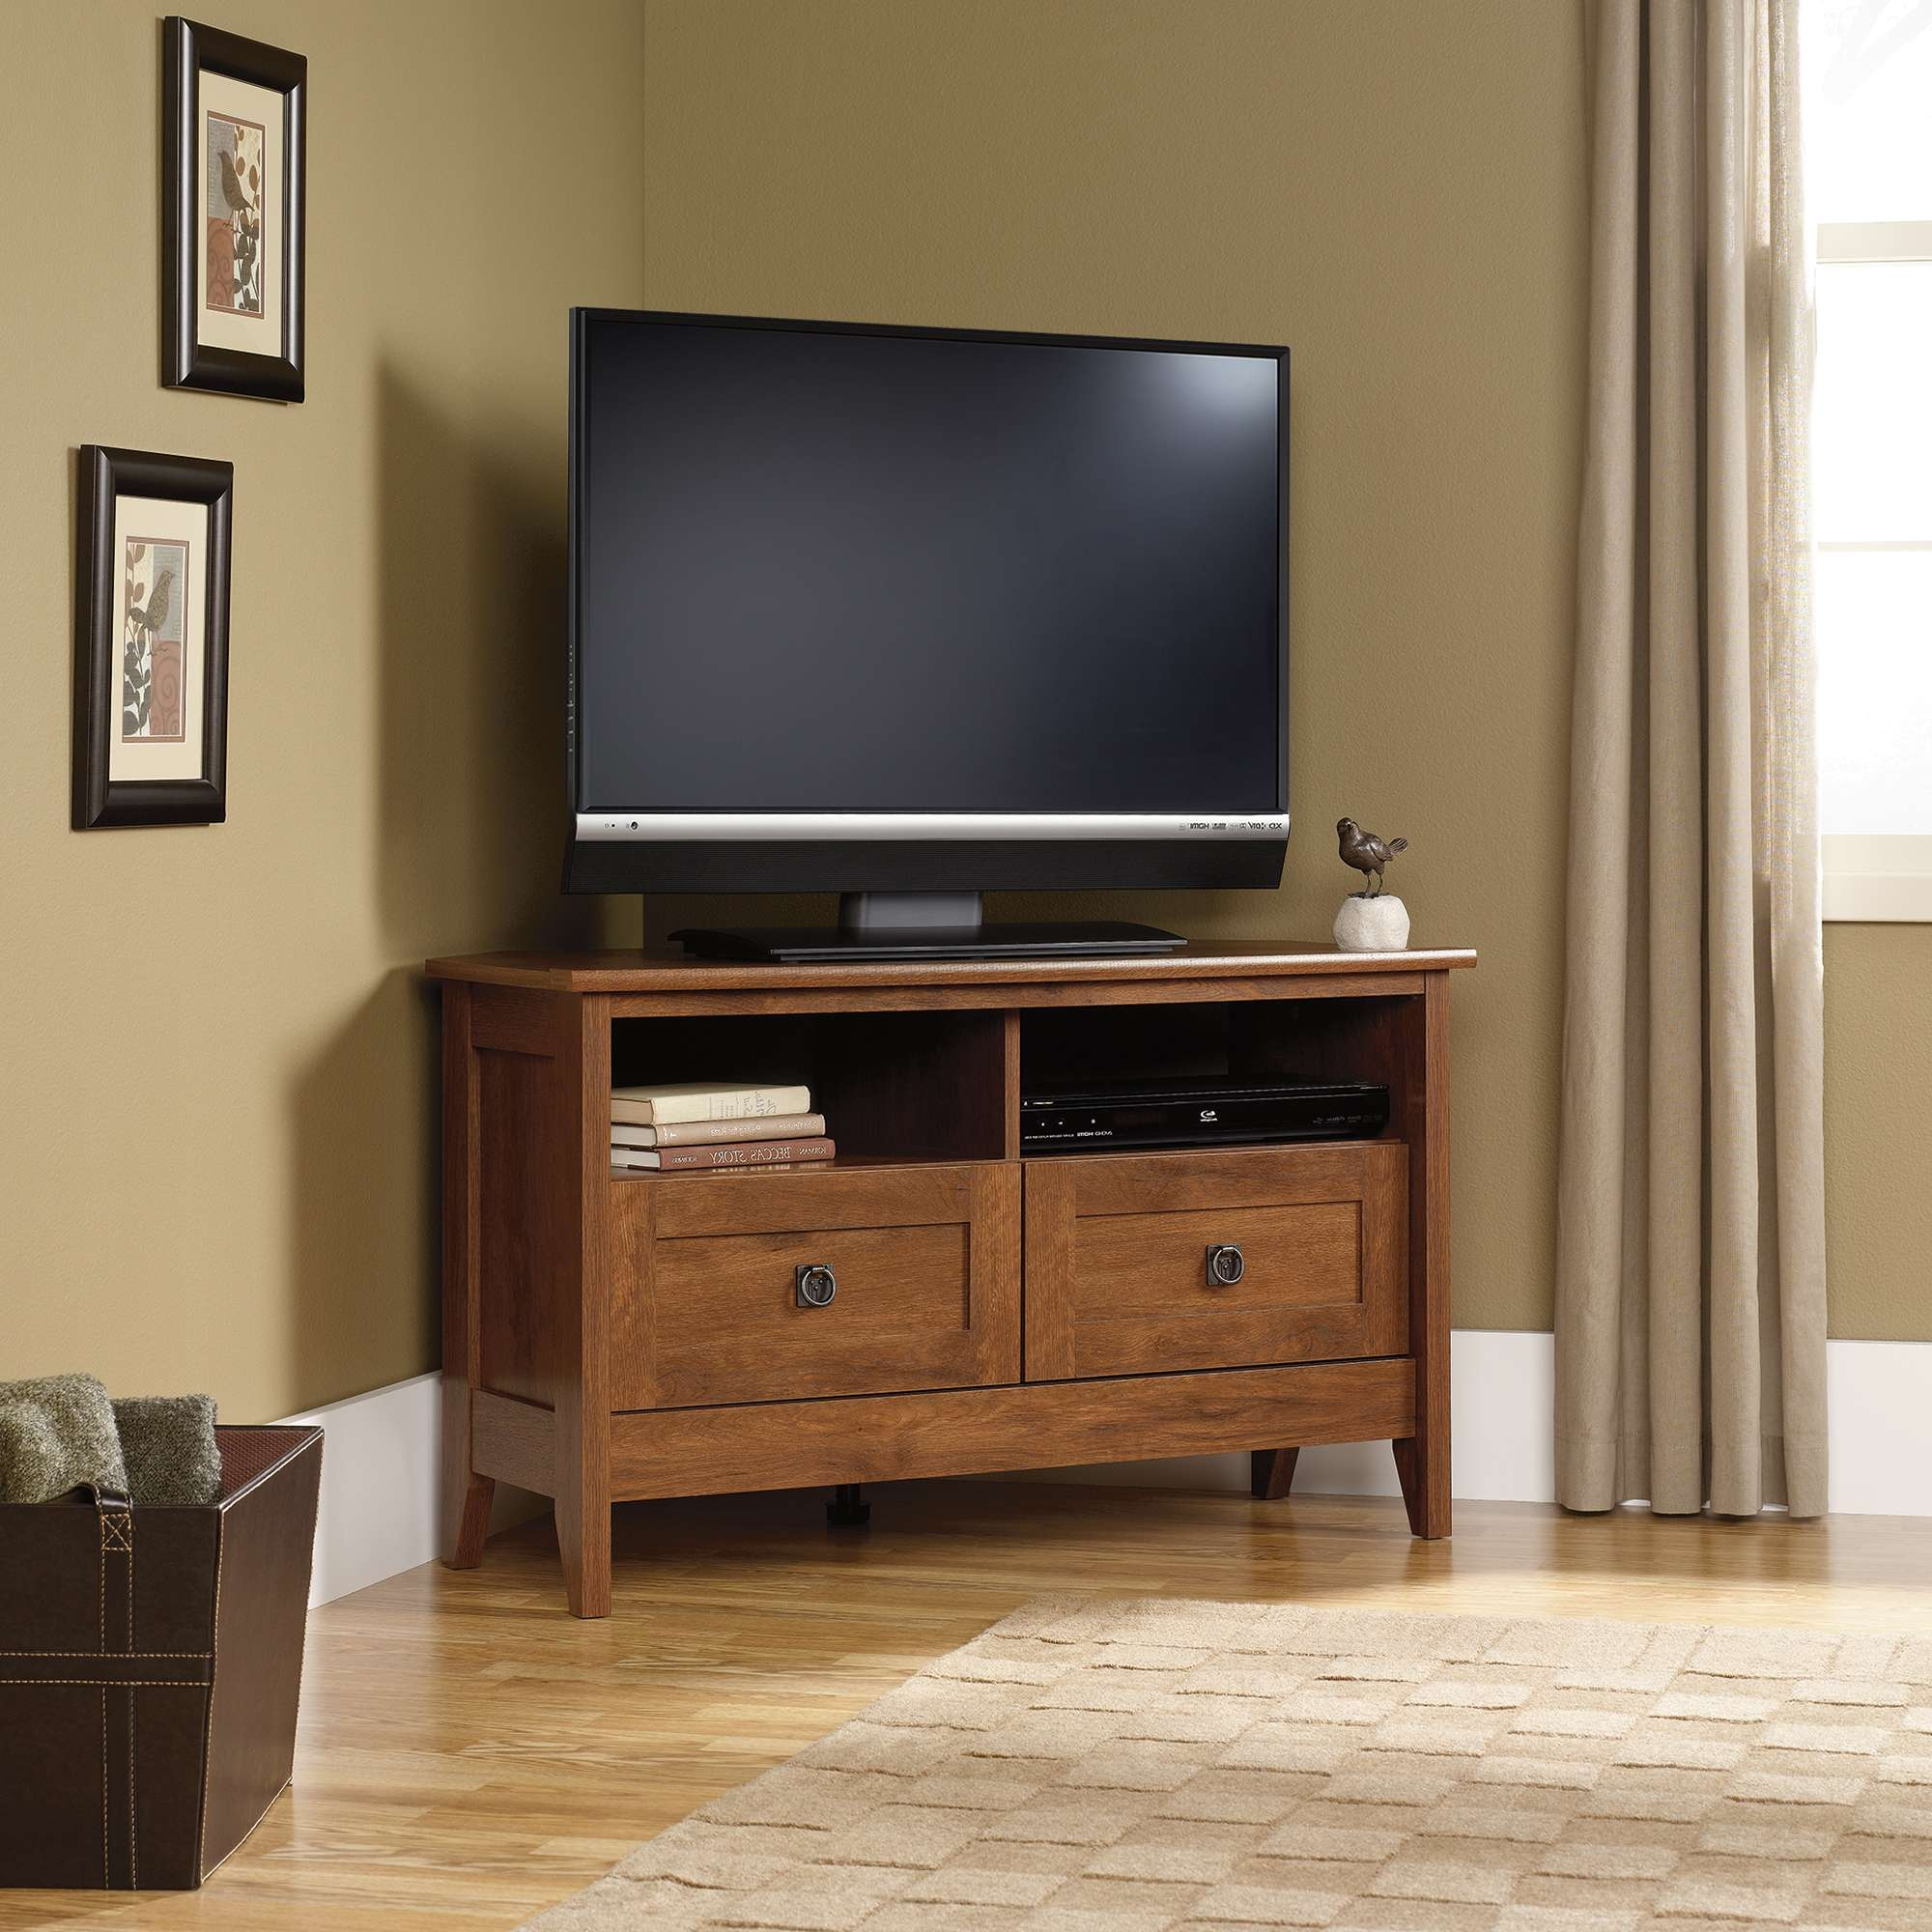 Sauder Select | Corner Tv Stand | 410627 | Sauder Intended For Tv Stands Corner Units (View 14 of 15)